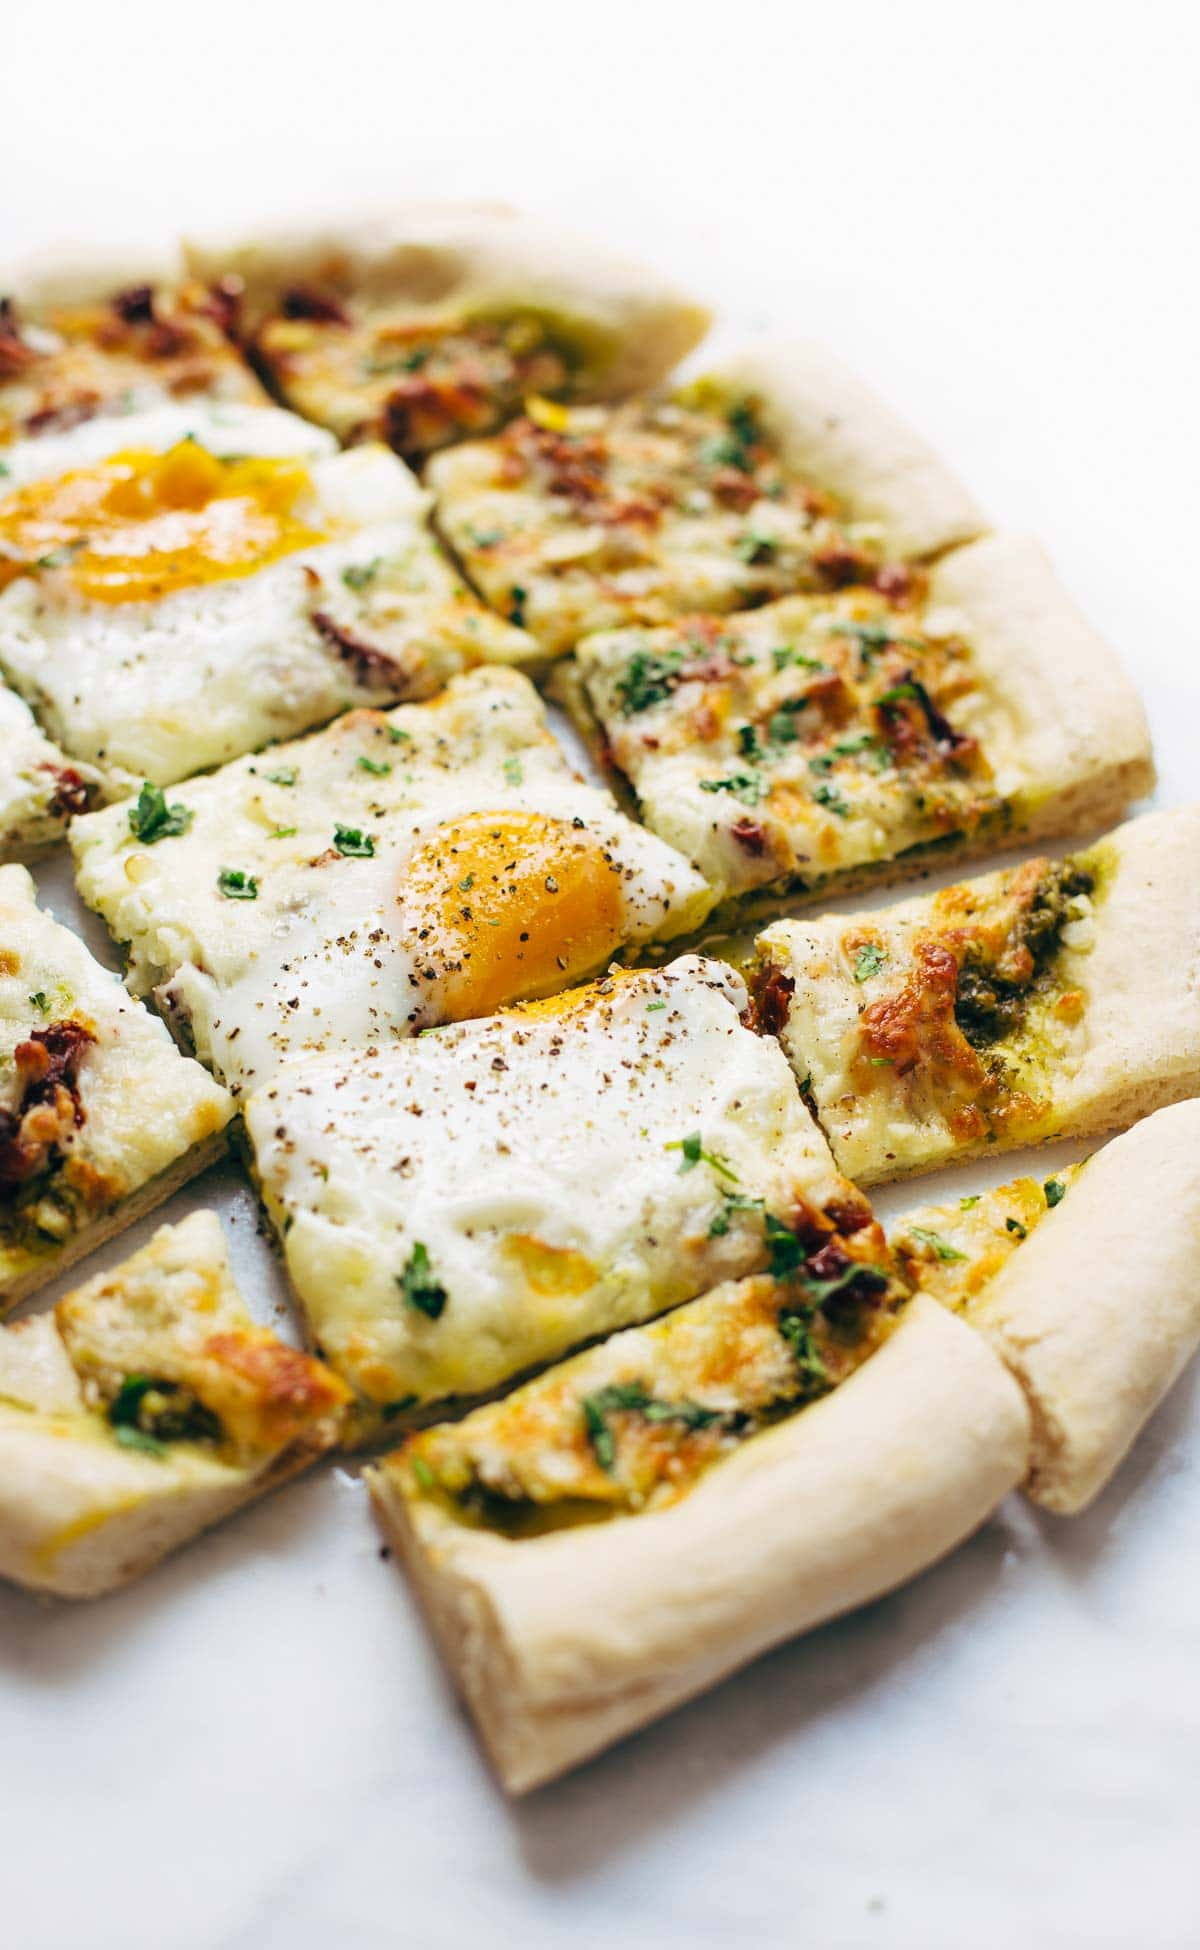 Breakfast Pizza with Kale Pesto & Sun Dried Tomatoes